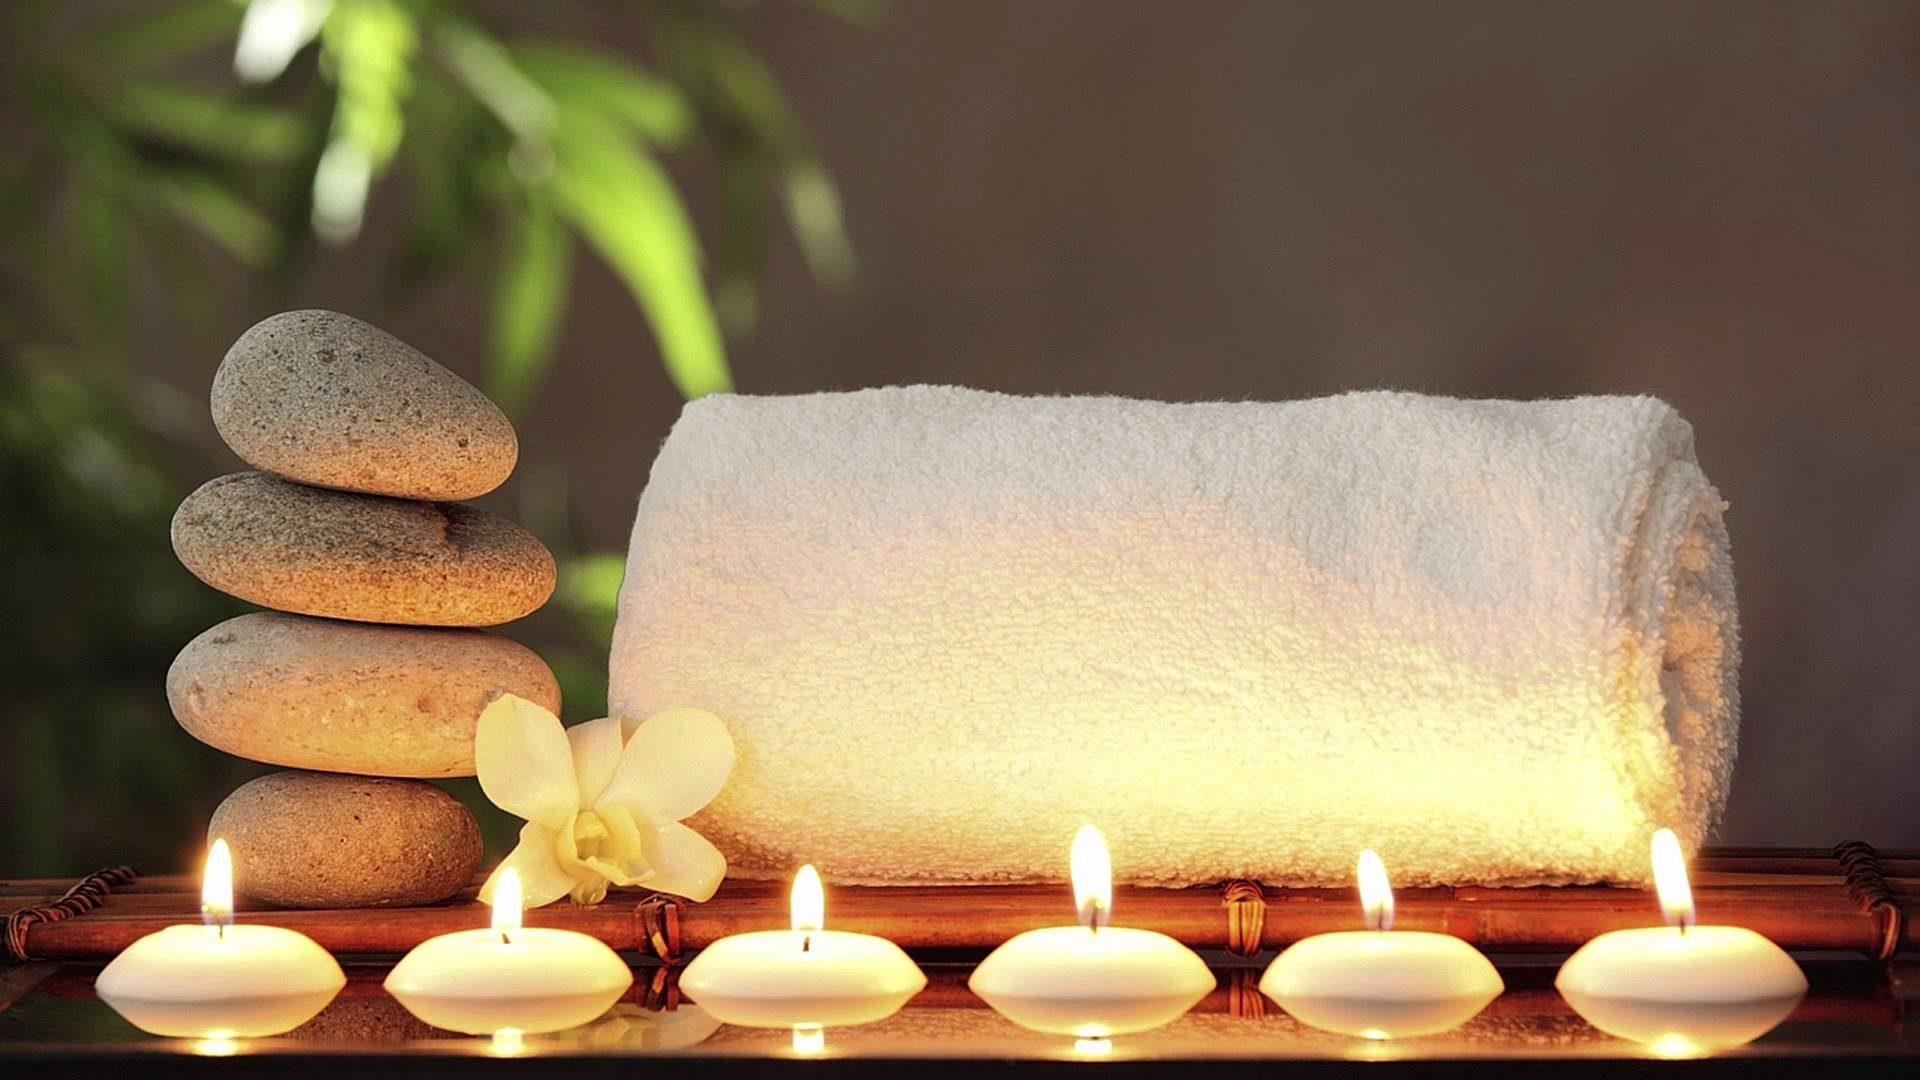 What benefits can we enjoy due to massage?